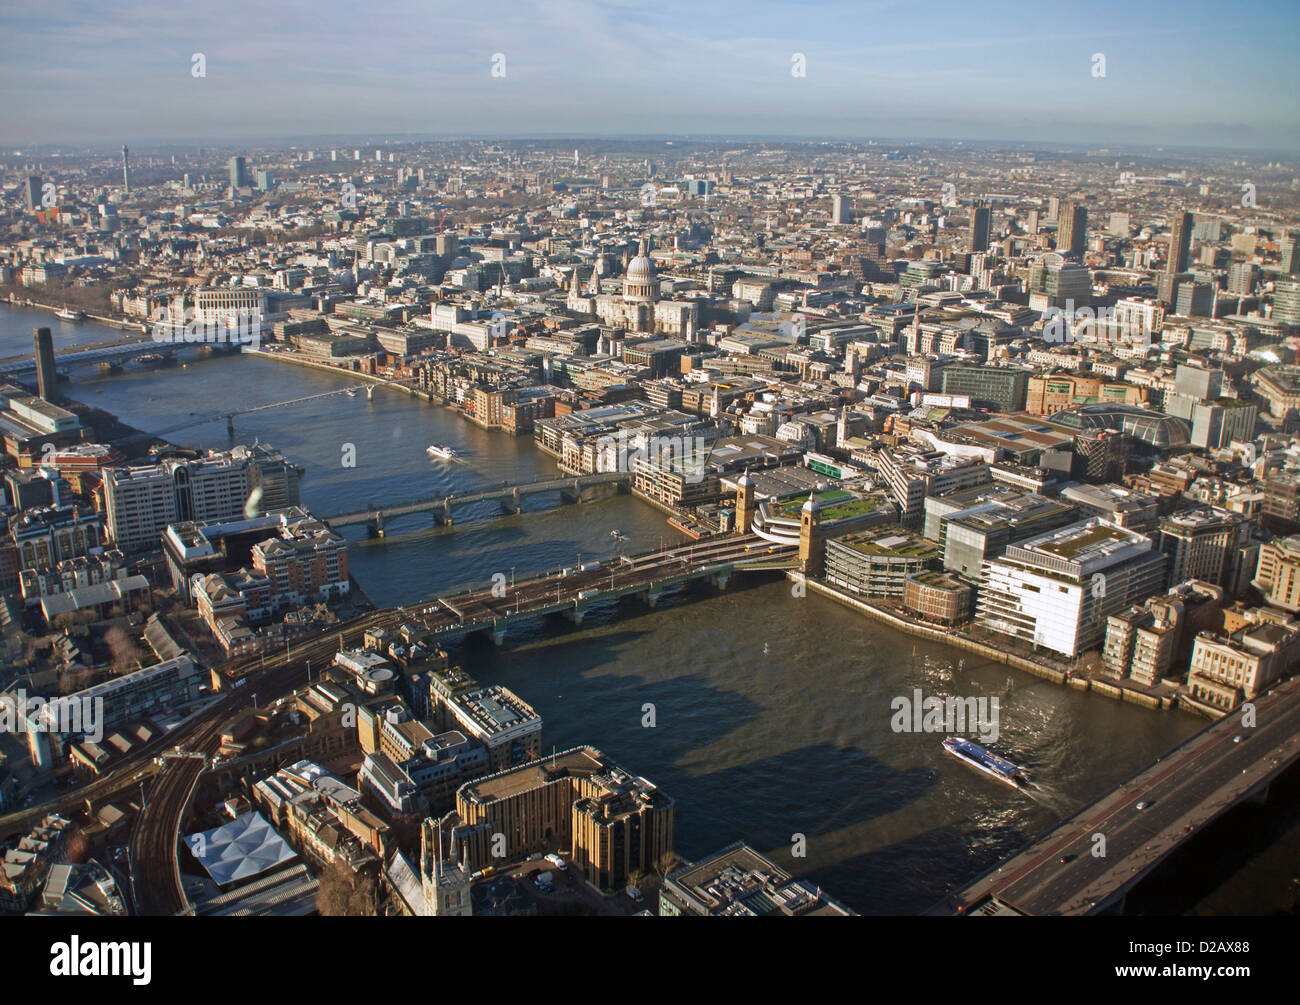 The View from The Shard, including St. Paul's Cathedral, Southwark Bridge and Blackfriars Bridge, London, England, - Stock Image